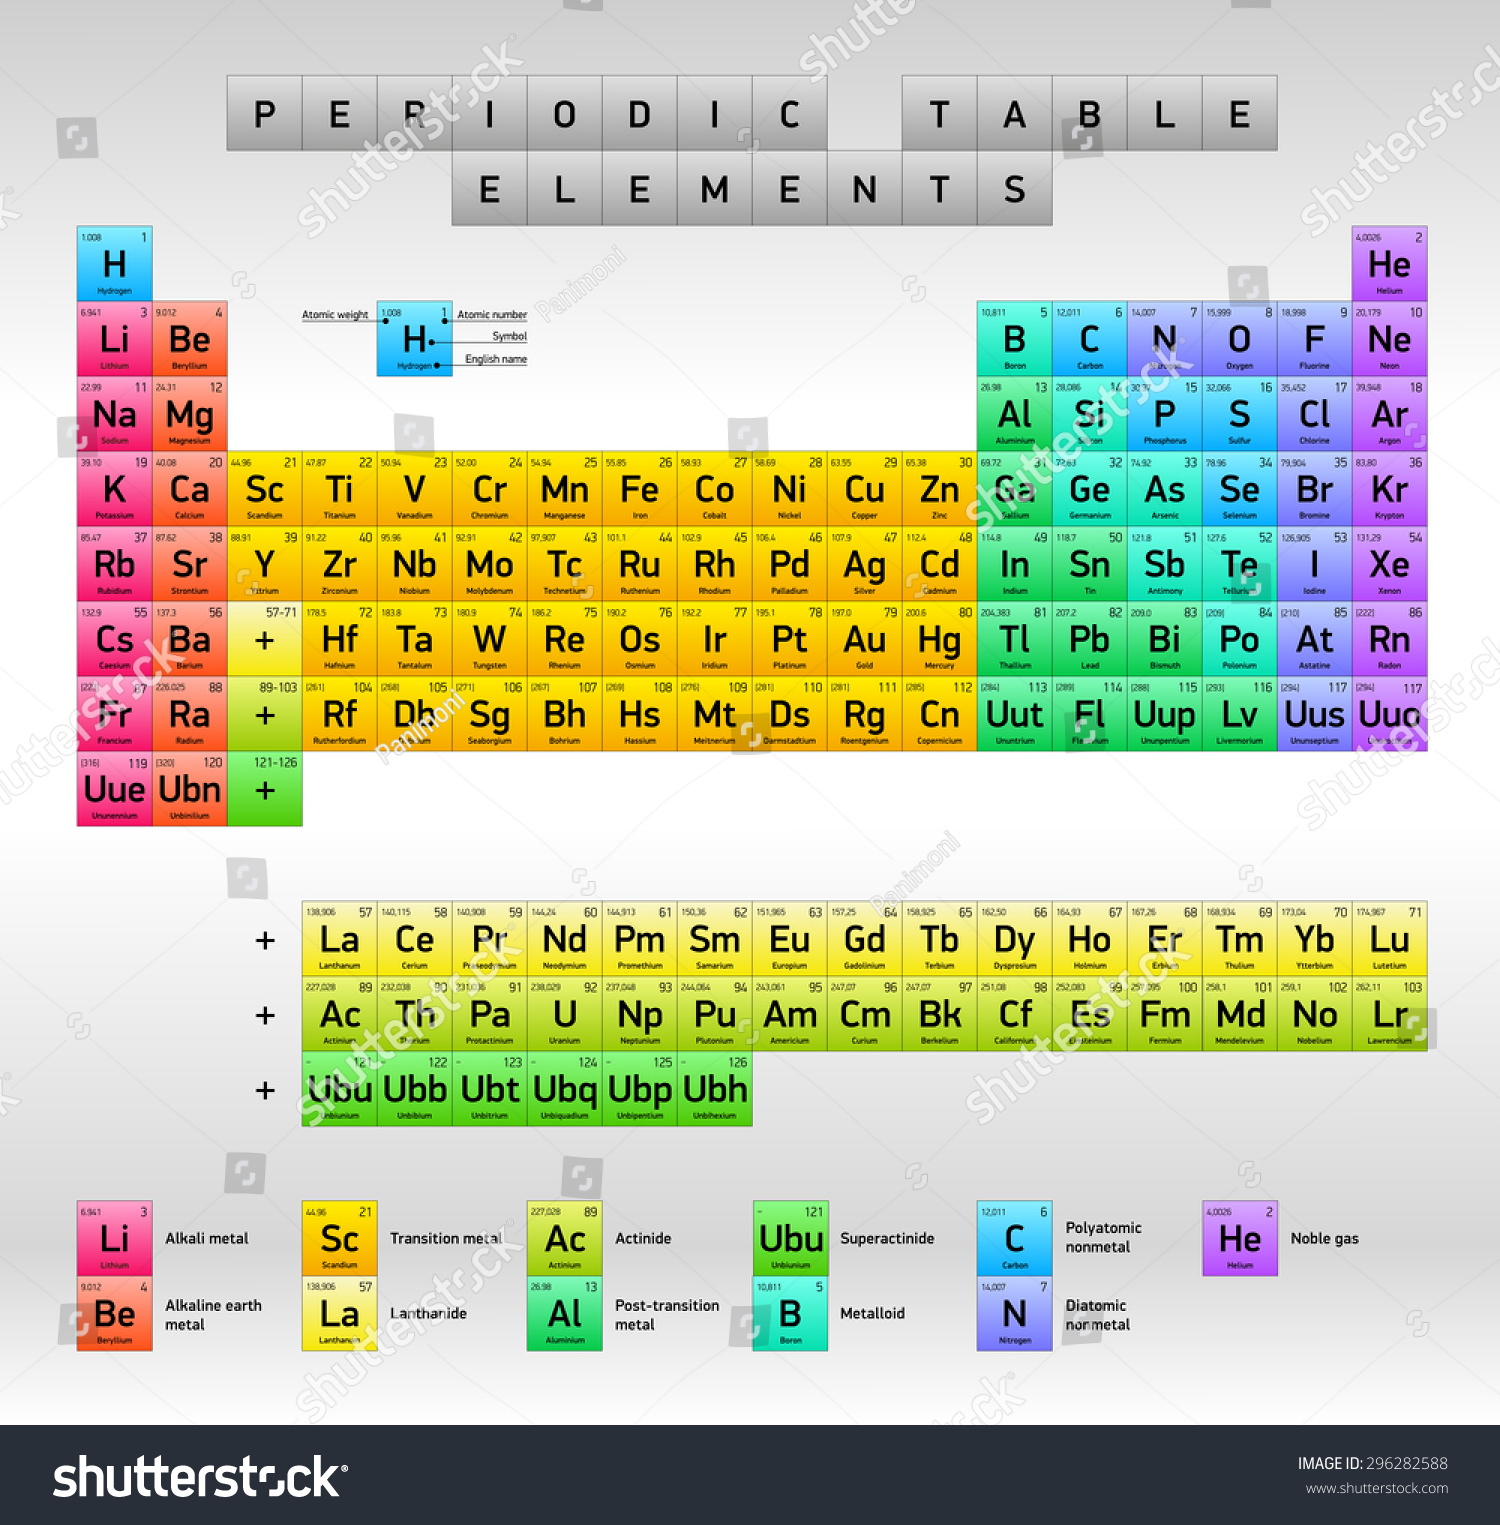 Periodic table elements vector design extended stock vector periodic table of elements vector design extended version gamestrikefo Image collections